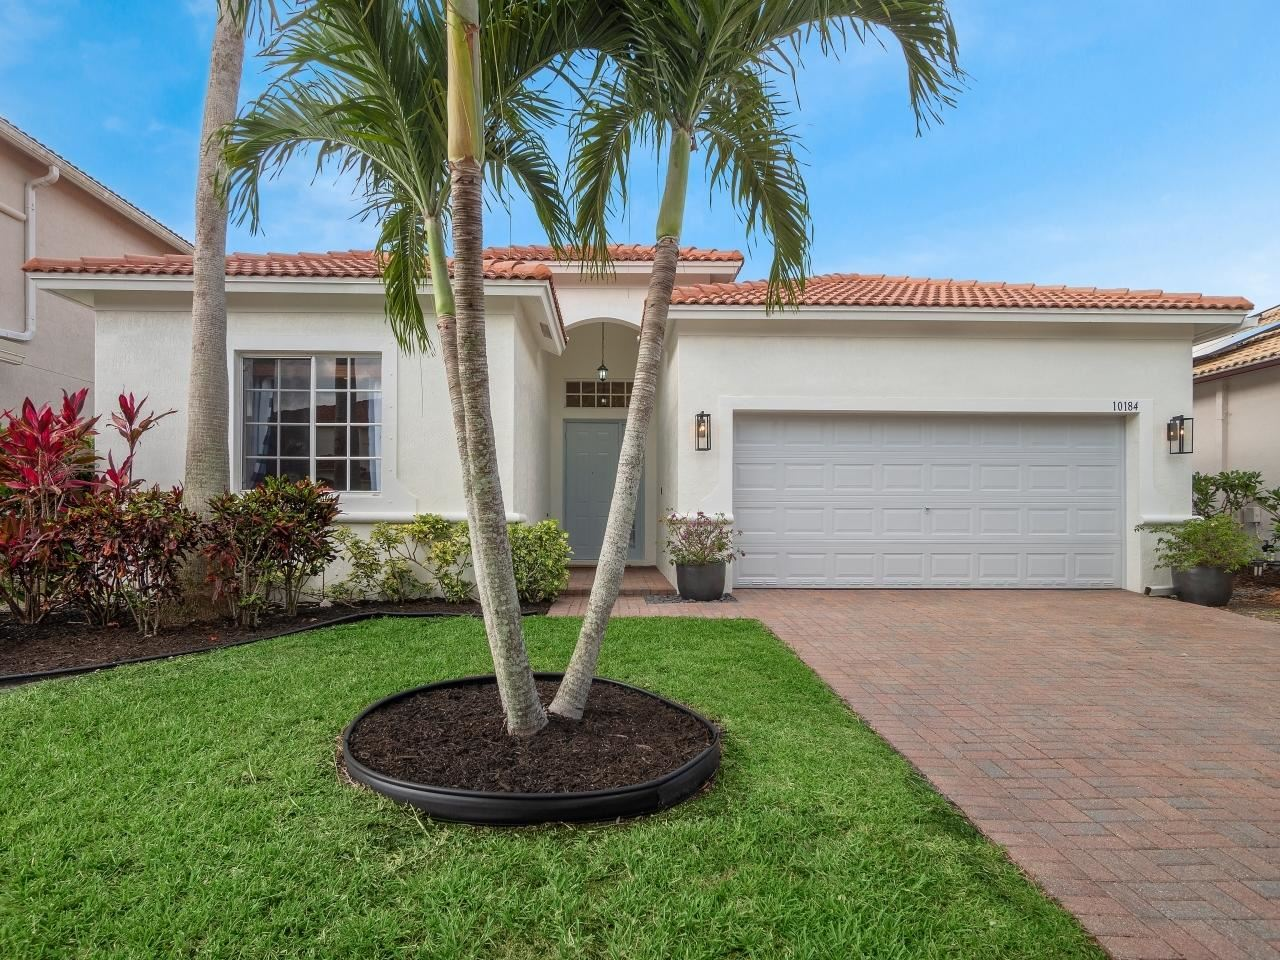 Photo of 10184 Boca Vista Drive, Boca Raton, FL 33498 (MLS # RX-10716701)